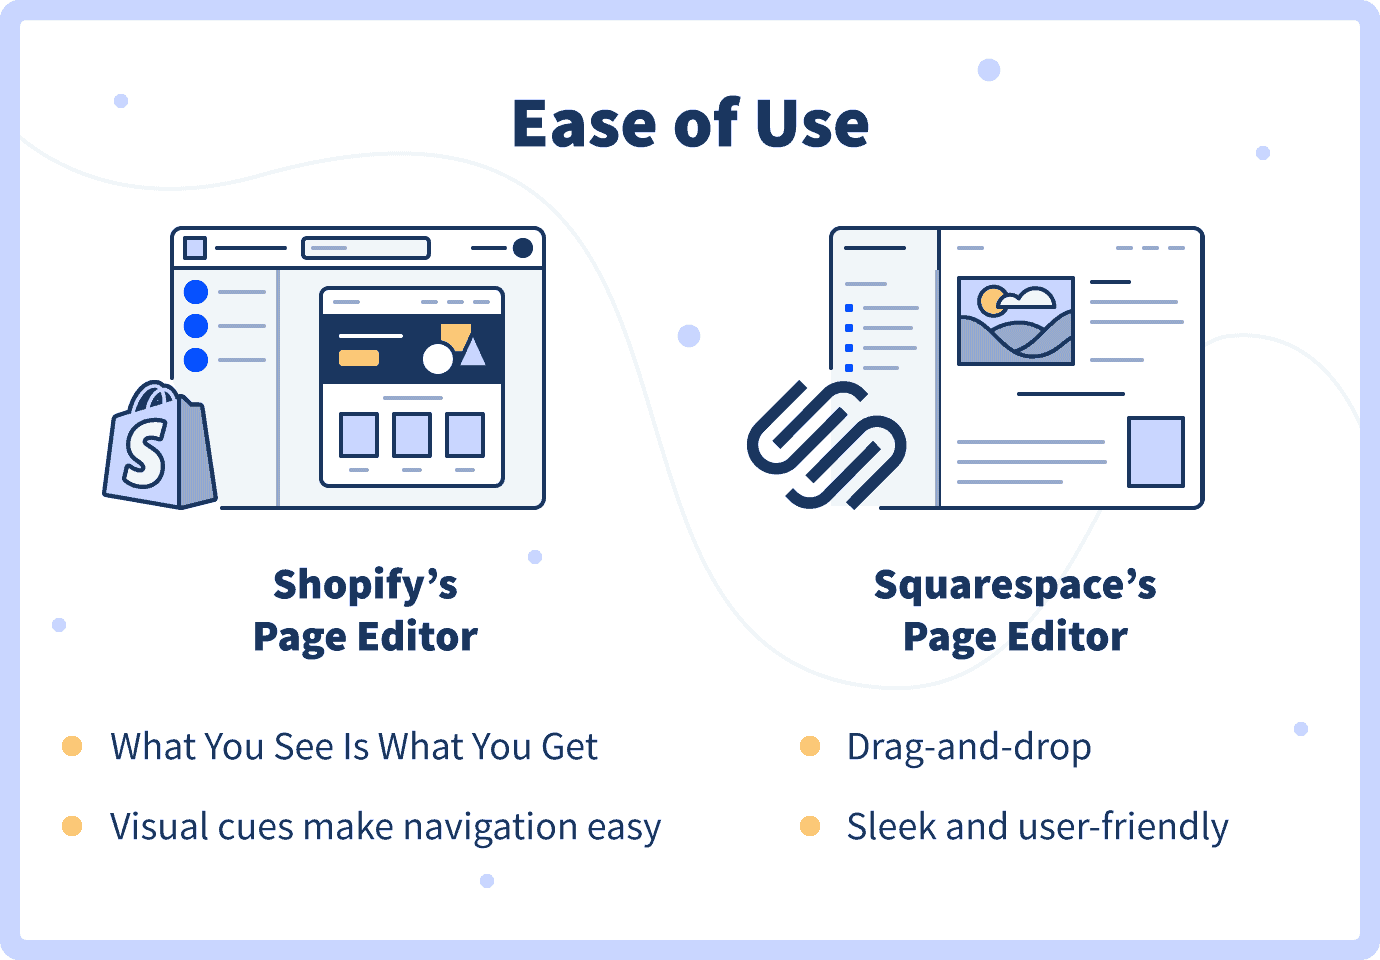 ease of use: Shopify's page editor vs. Squarespace's page editor